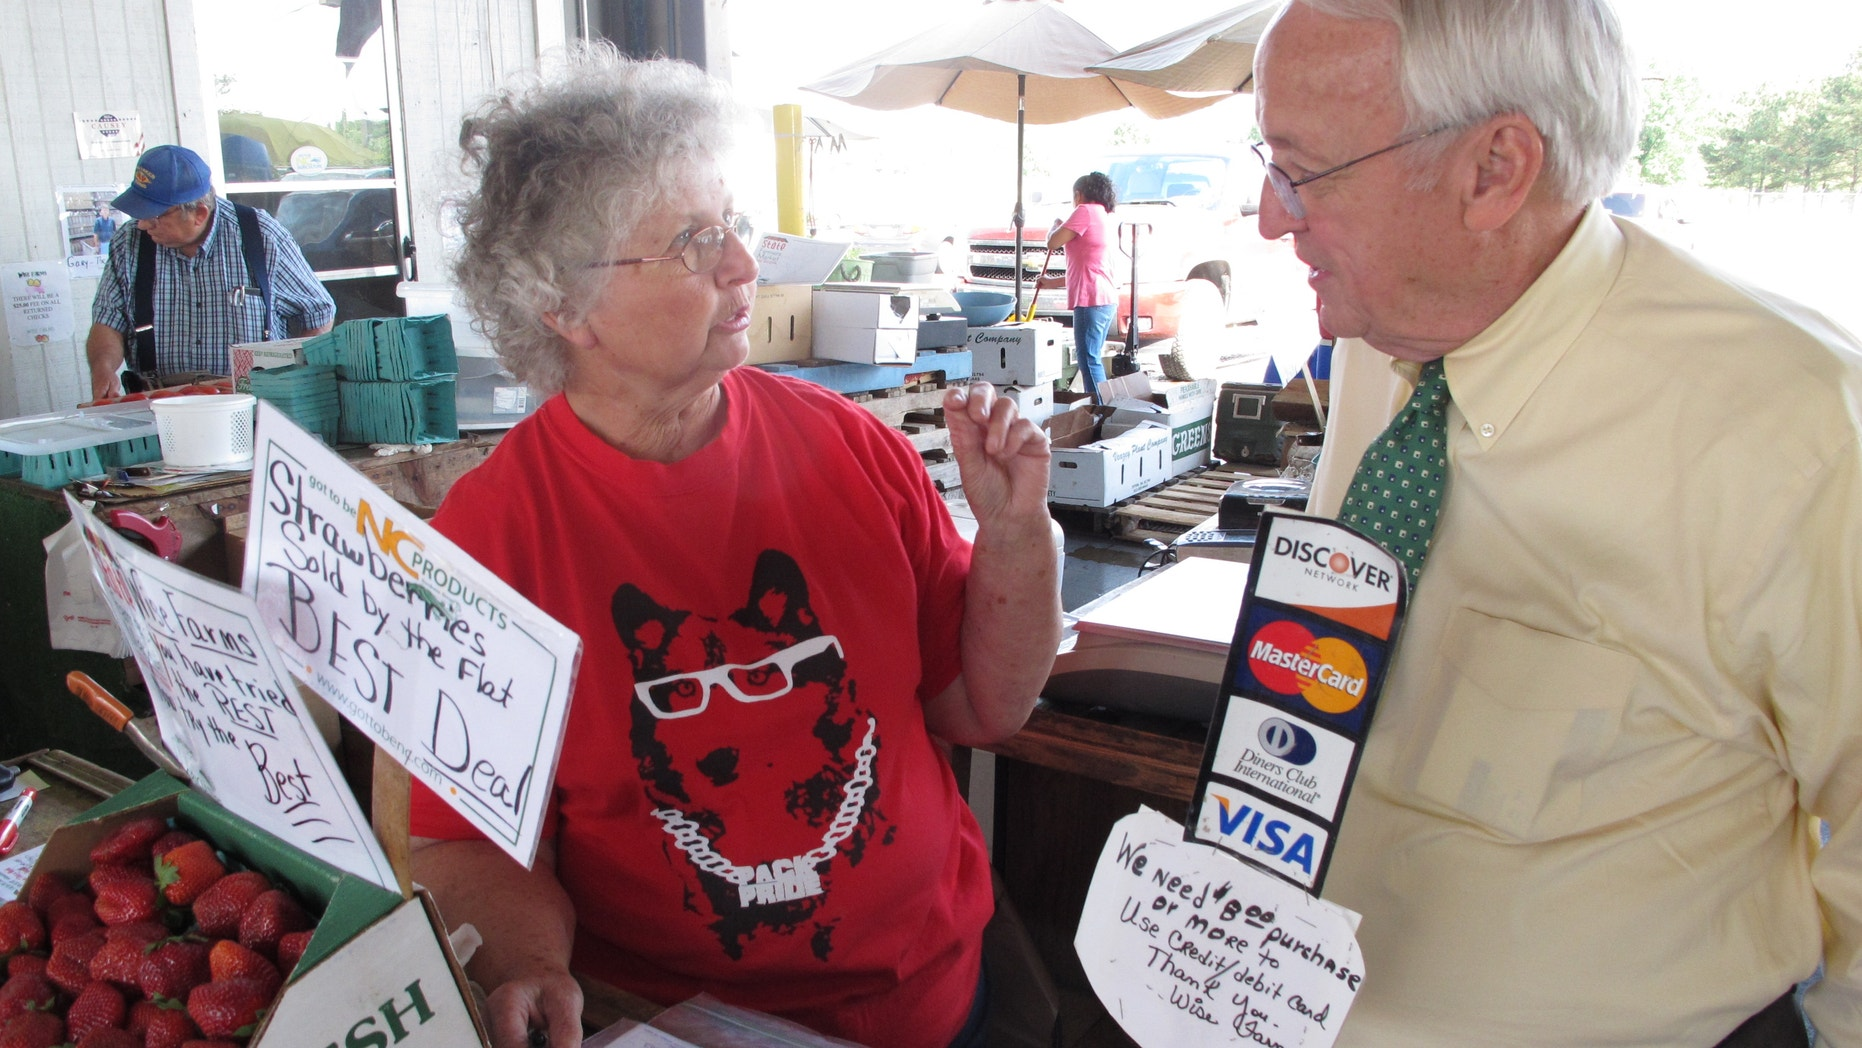 May 8, 2012: Kevin Concannon, U.S. undersecretary of agriculture, chats with vendor Helen Wise at the State Farmers Market in Raleigh, N.C.